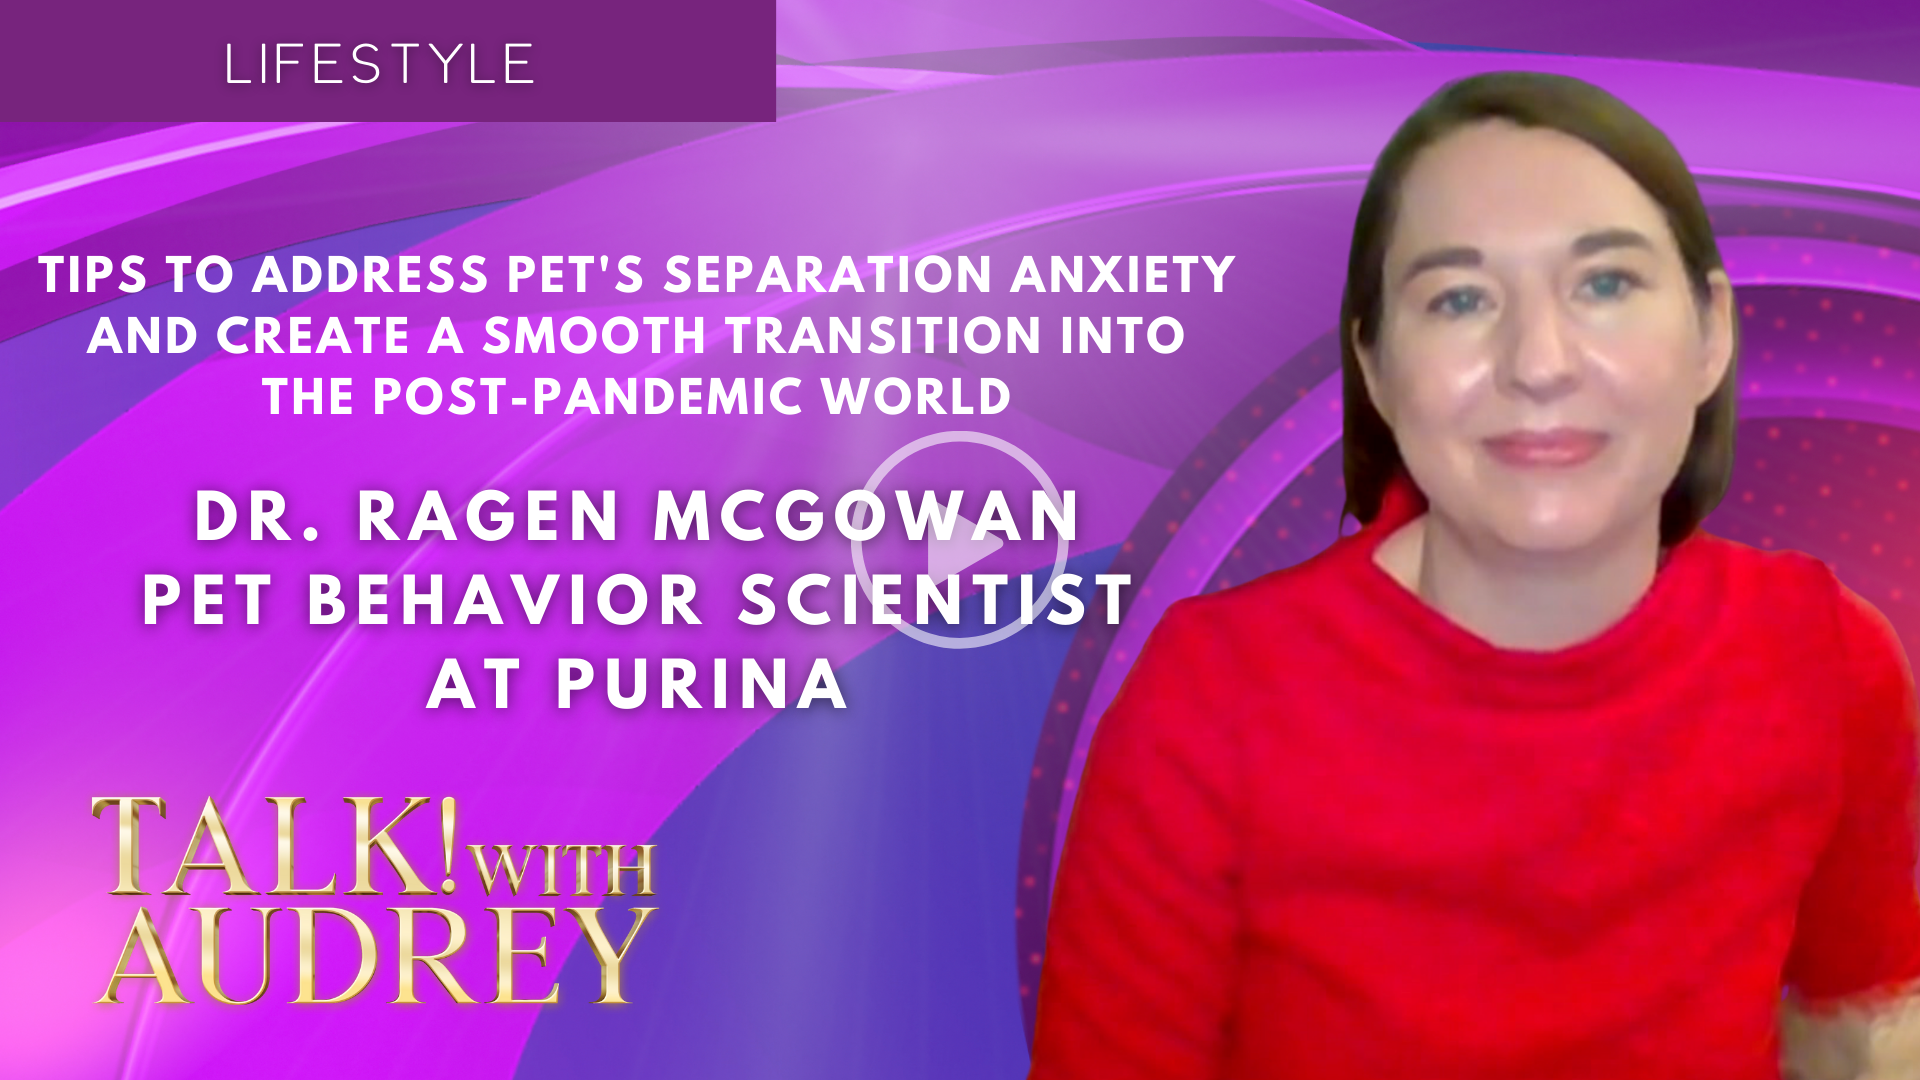 Dr. Ragen McGowan – Tips to Address Pet's Separation Anxiety and Create a Smooth Transition Into the Post-Pandemic World